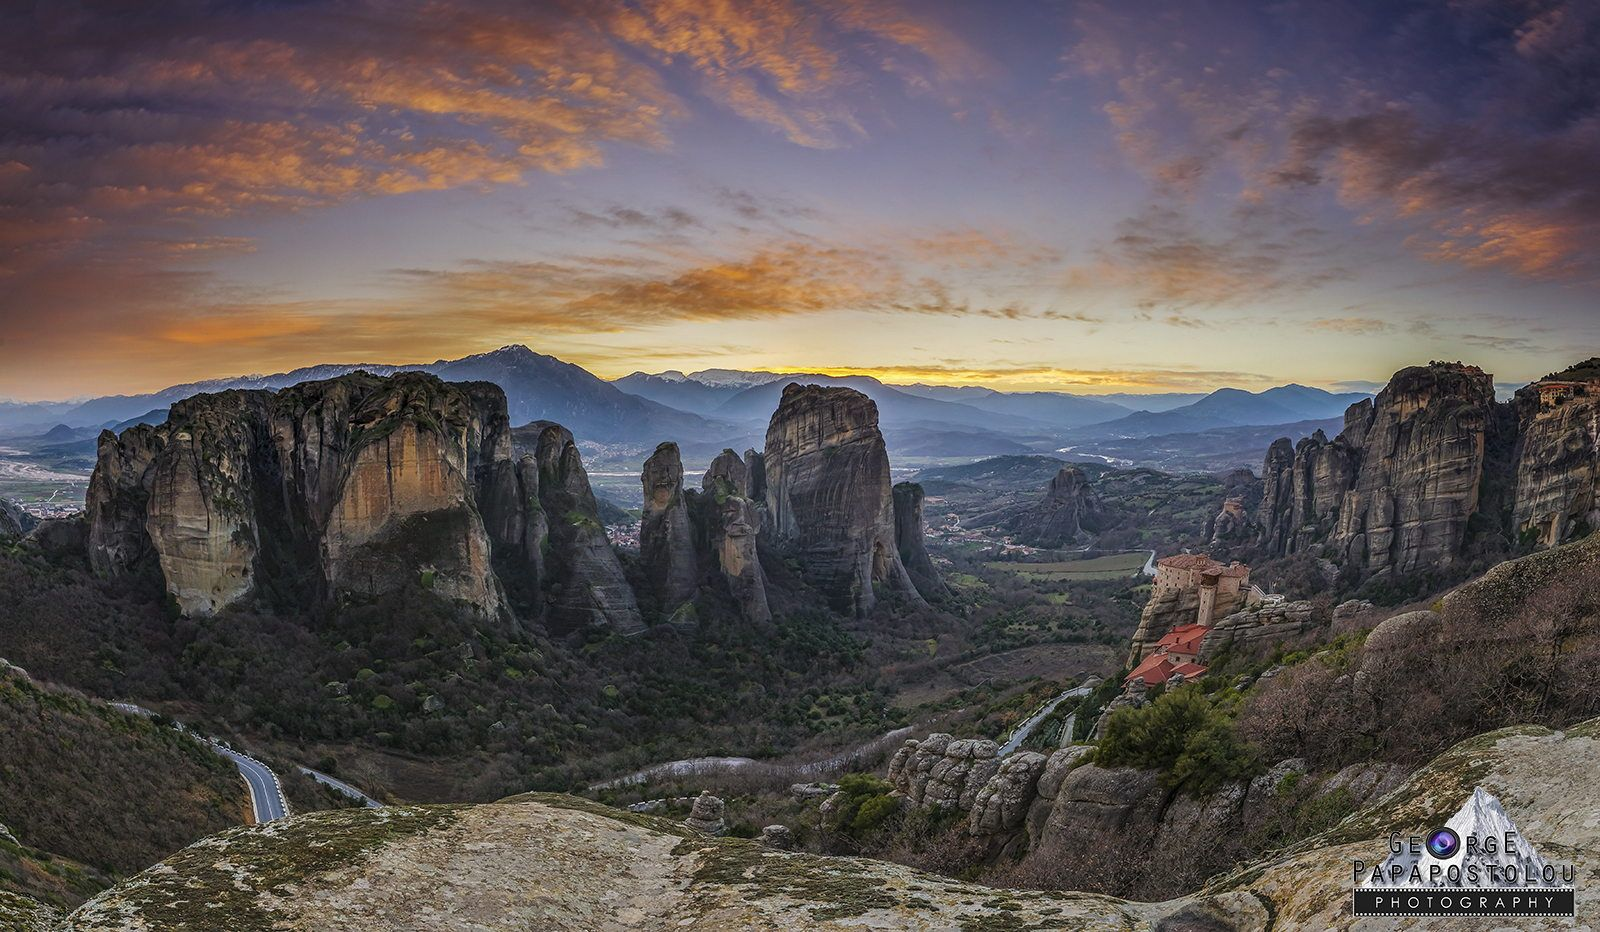 Photograph Timeless Towers of Faith by George Papapostolou on 500px